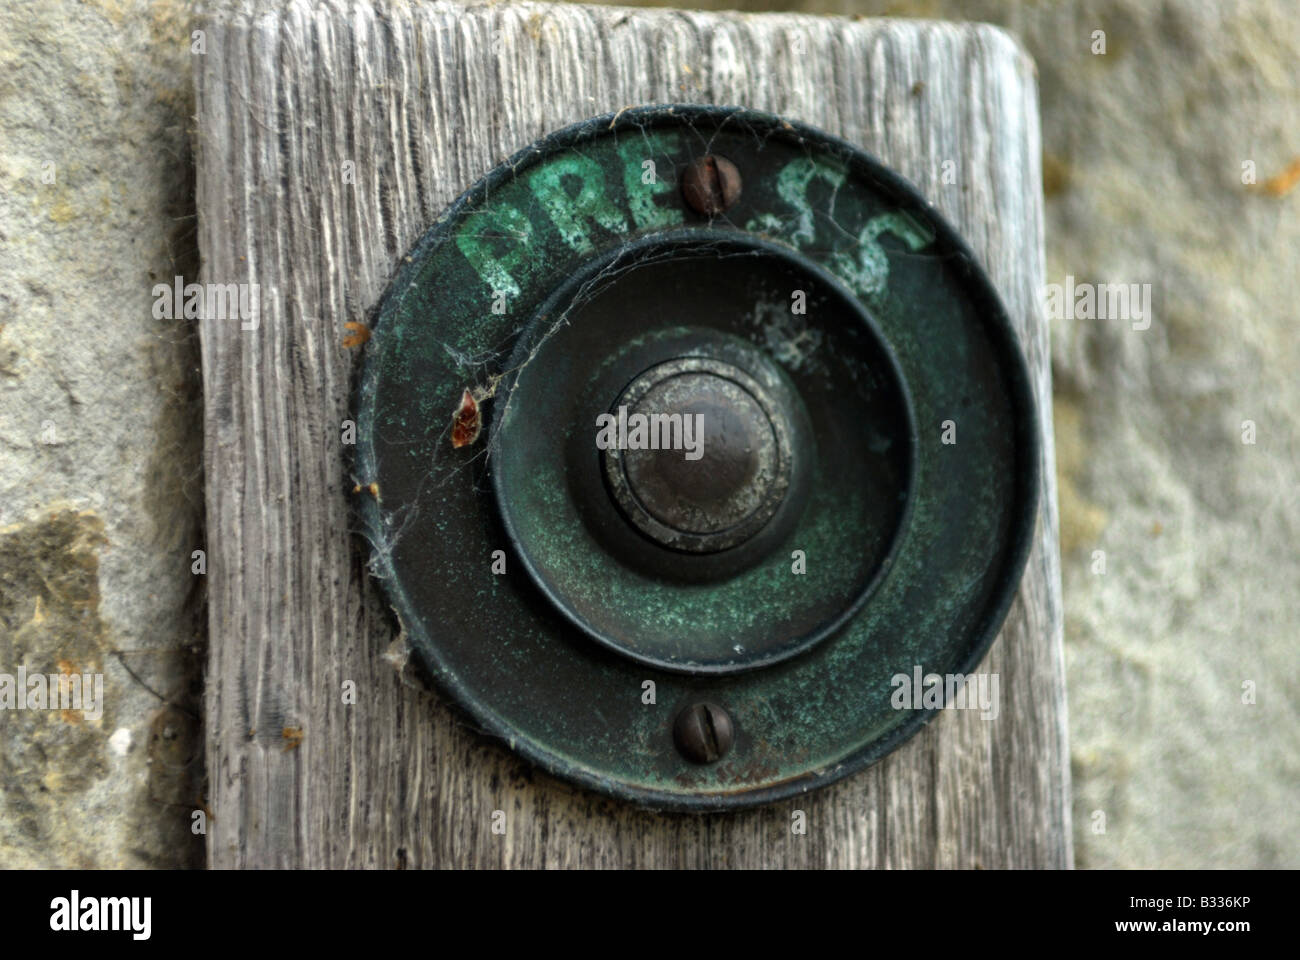 Merveilleux An Old Fashioned Door Bell With The Work Press Written On It   Stock Image